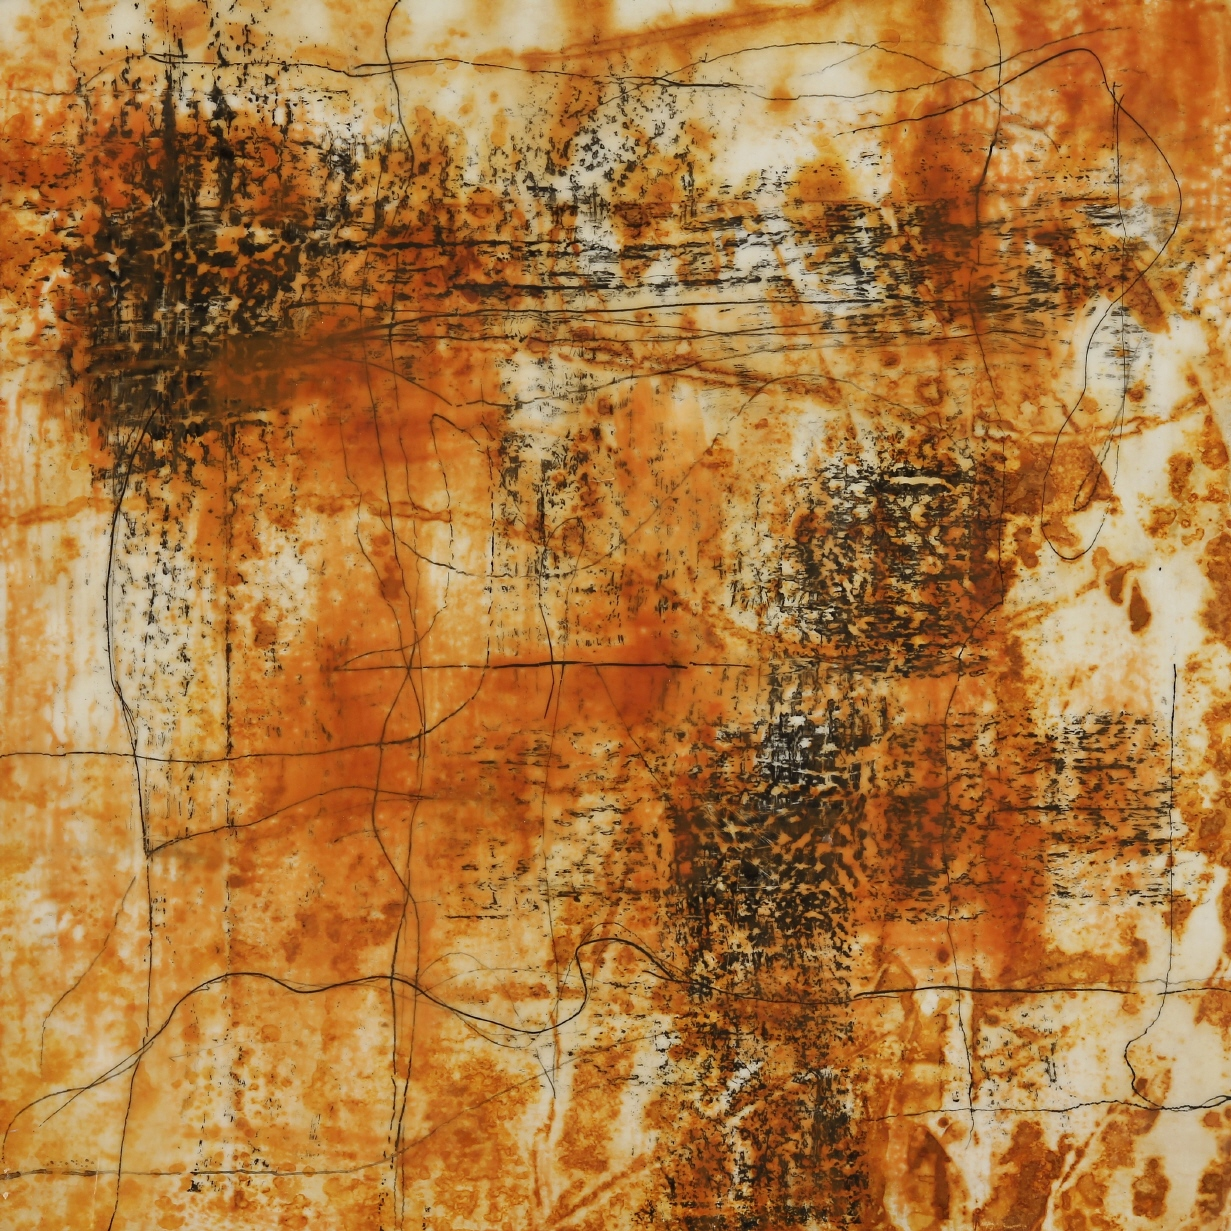 Rust #50, 2013, Rust, encaustic, India ink on paper on panel, 12 x 12""